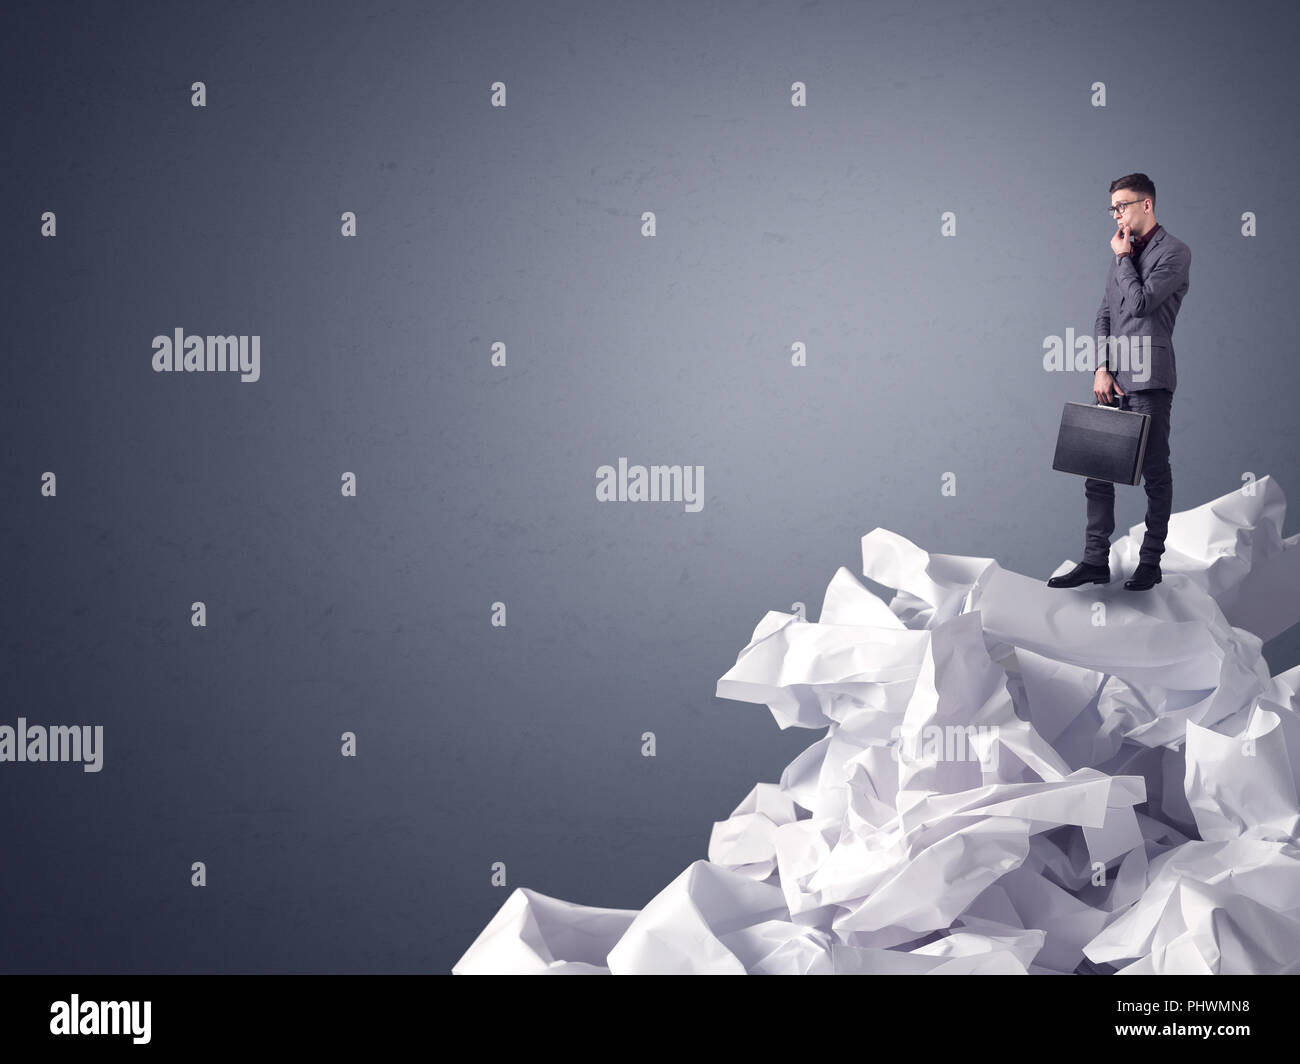 Thoughtful young businessman standing on a pile of crumpled paper with a dark grey background - Stock Image